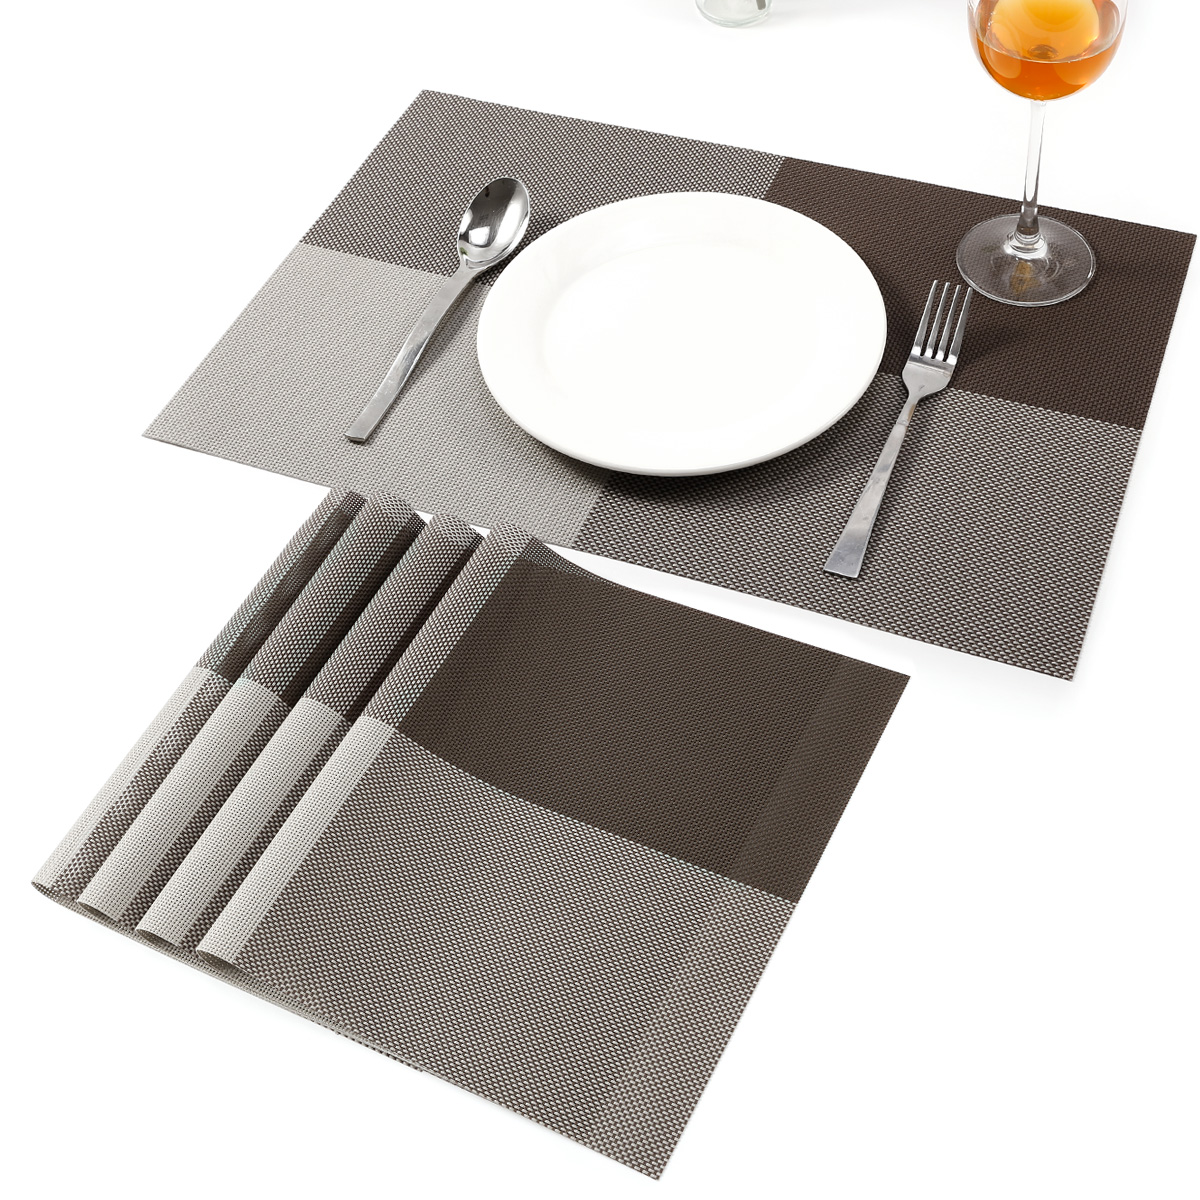 4 Table Mats Washable PVC Dining Place Non slip Heat  : HA308g4 from www.ebay.co.uk size 1200 x 1200 jpeg 547kB